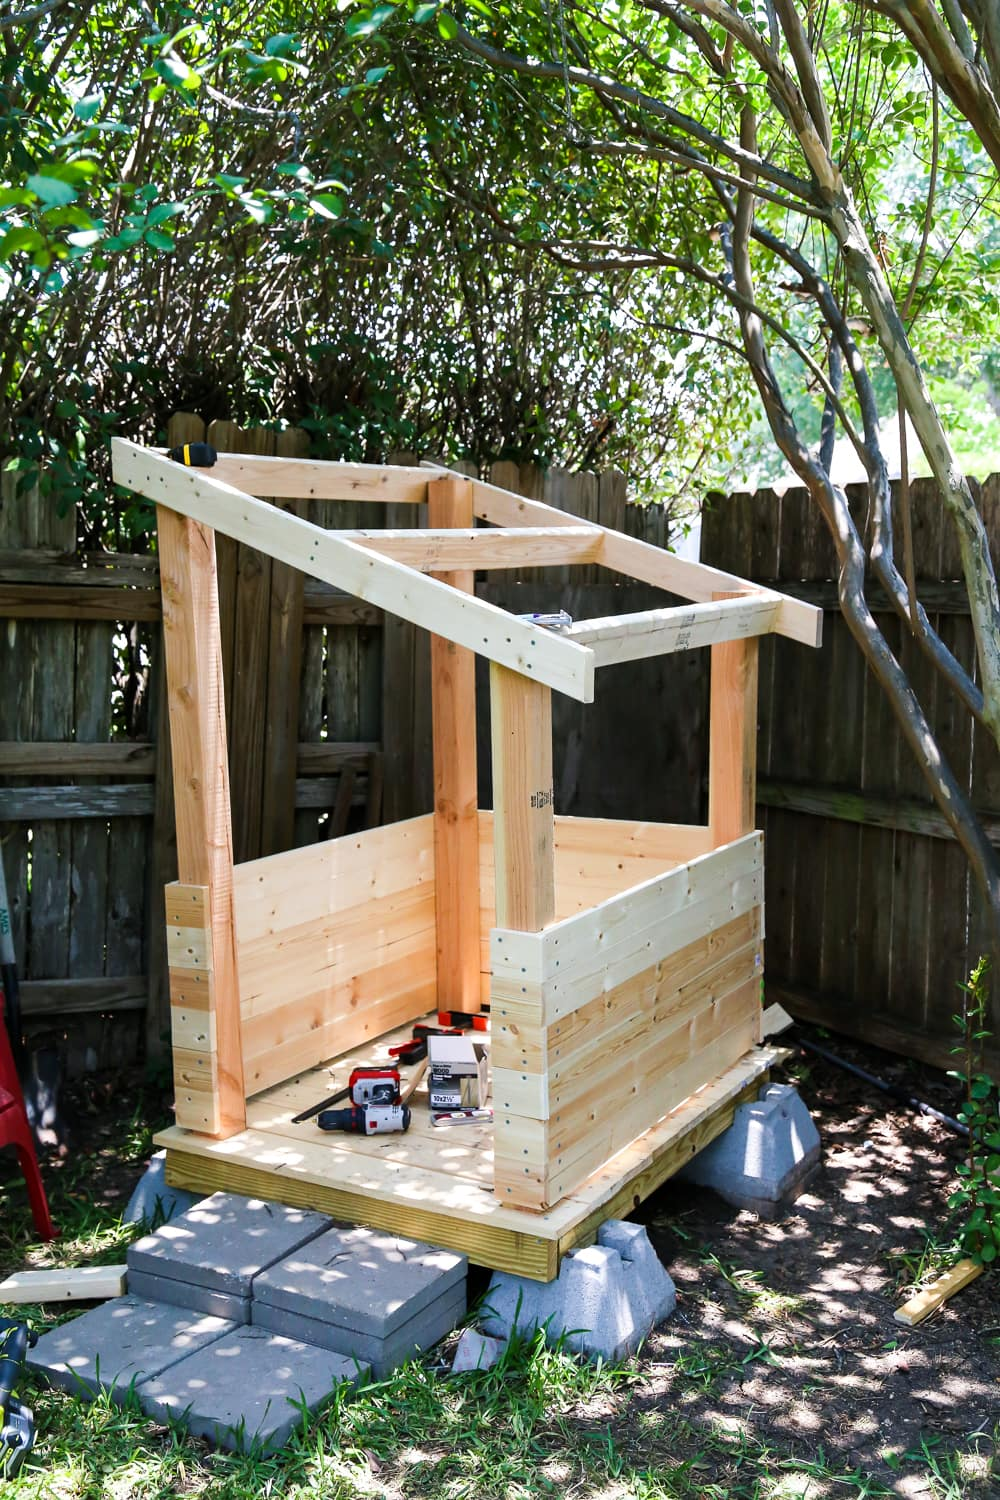 Charmant Itu0027s Affordable, How To Build An Adorable Backyard Playhouse For Your  Toddler Or Child. Itu0027s Affordable,